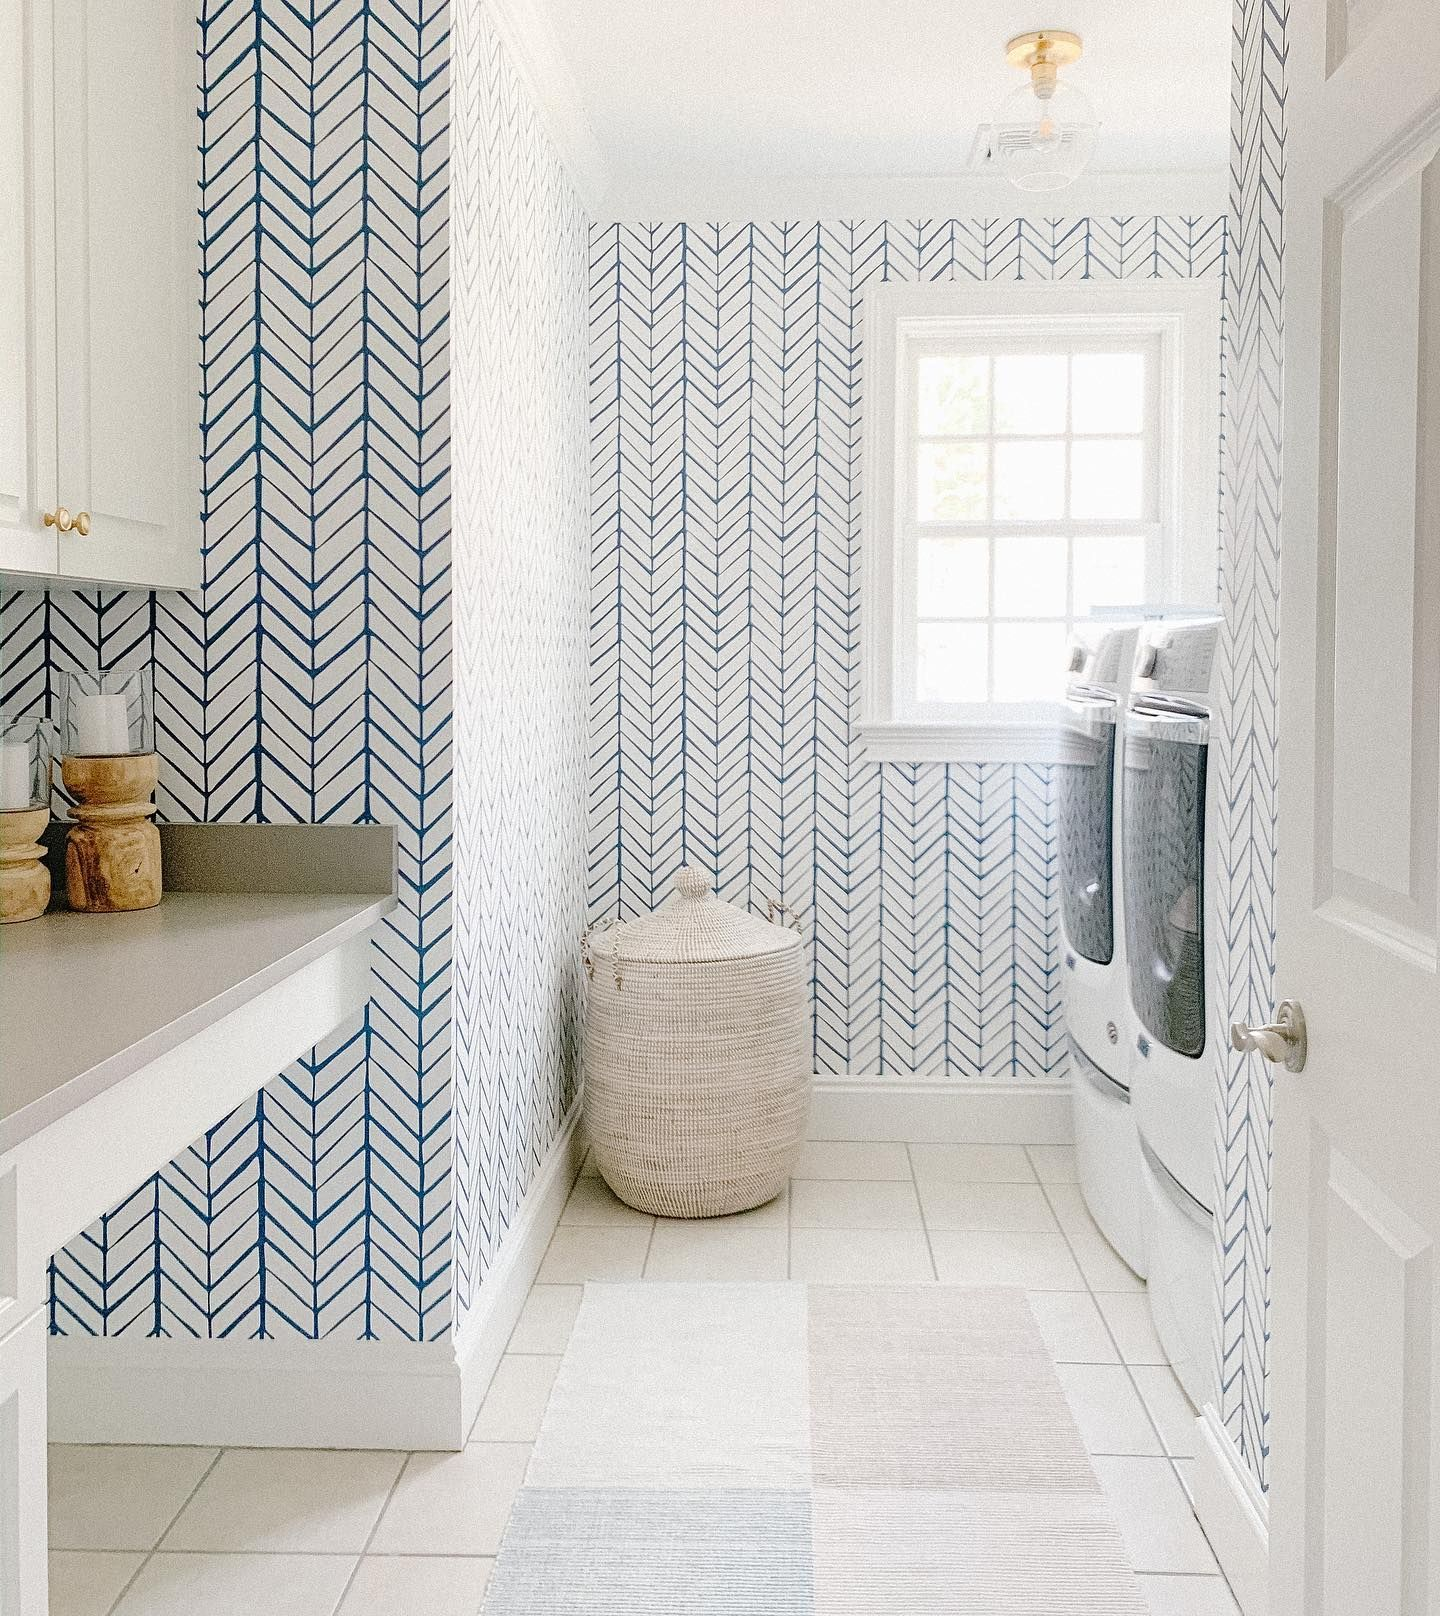 Feather Wallpaper in 2020   Feather wallpaper, Laundry ...